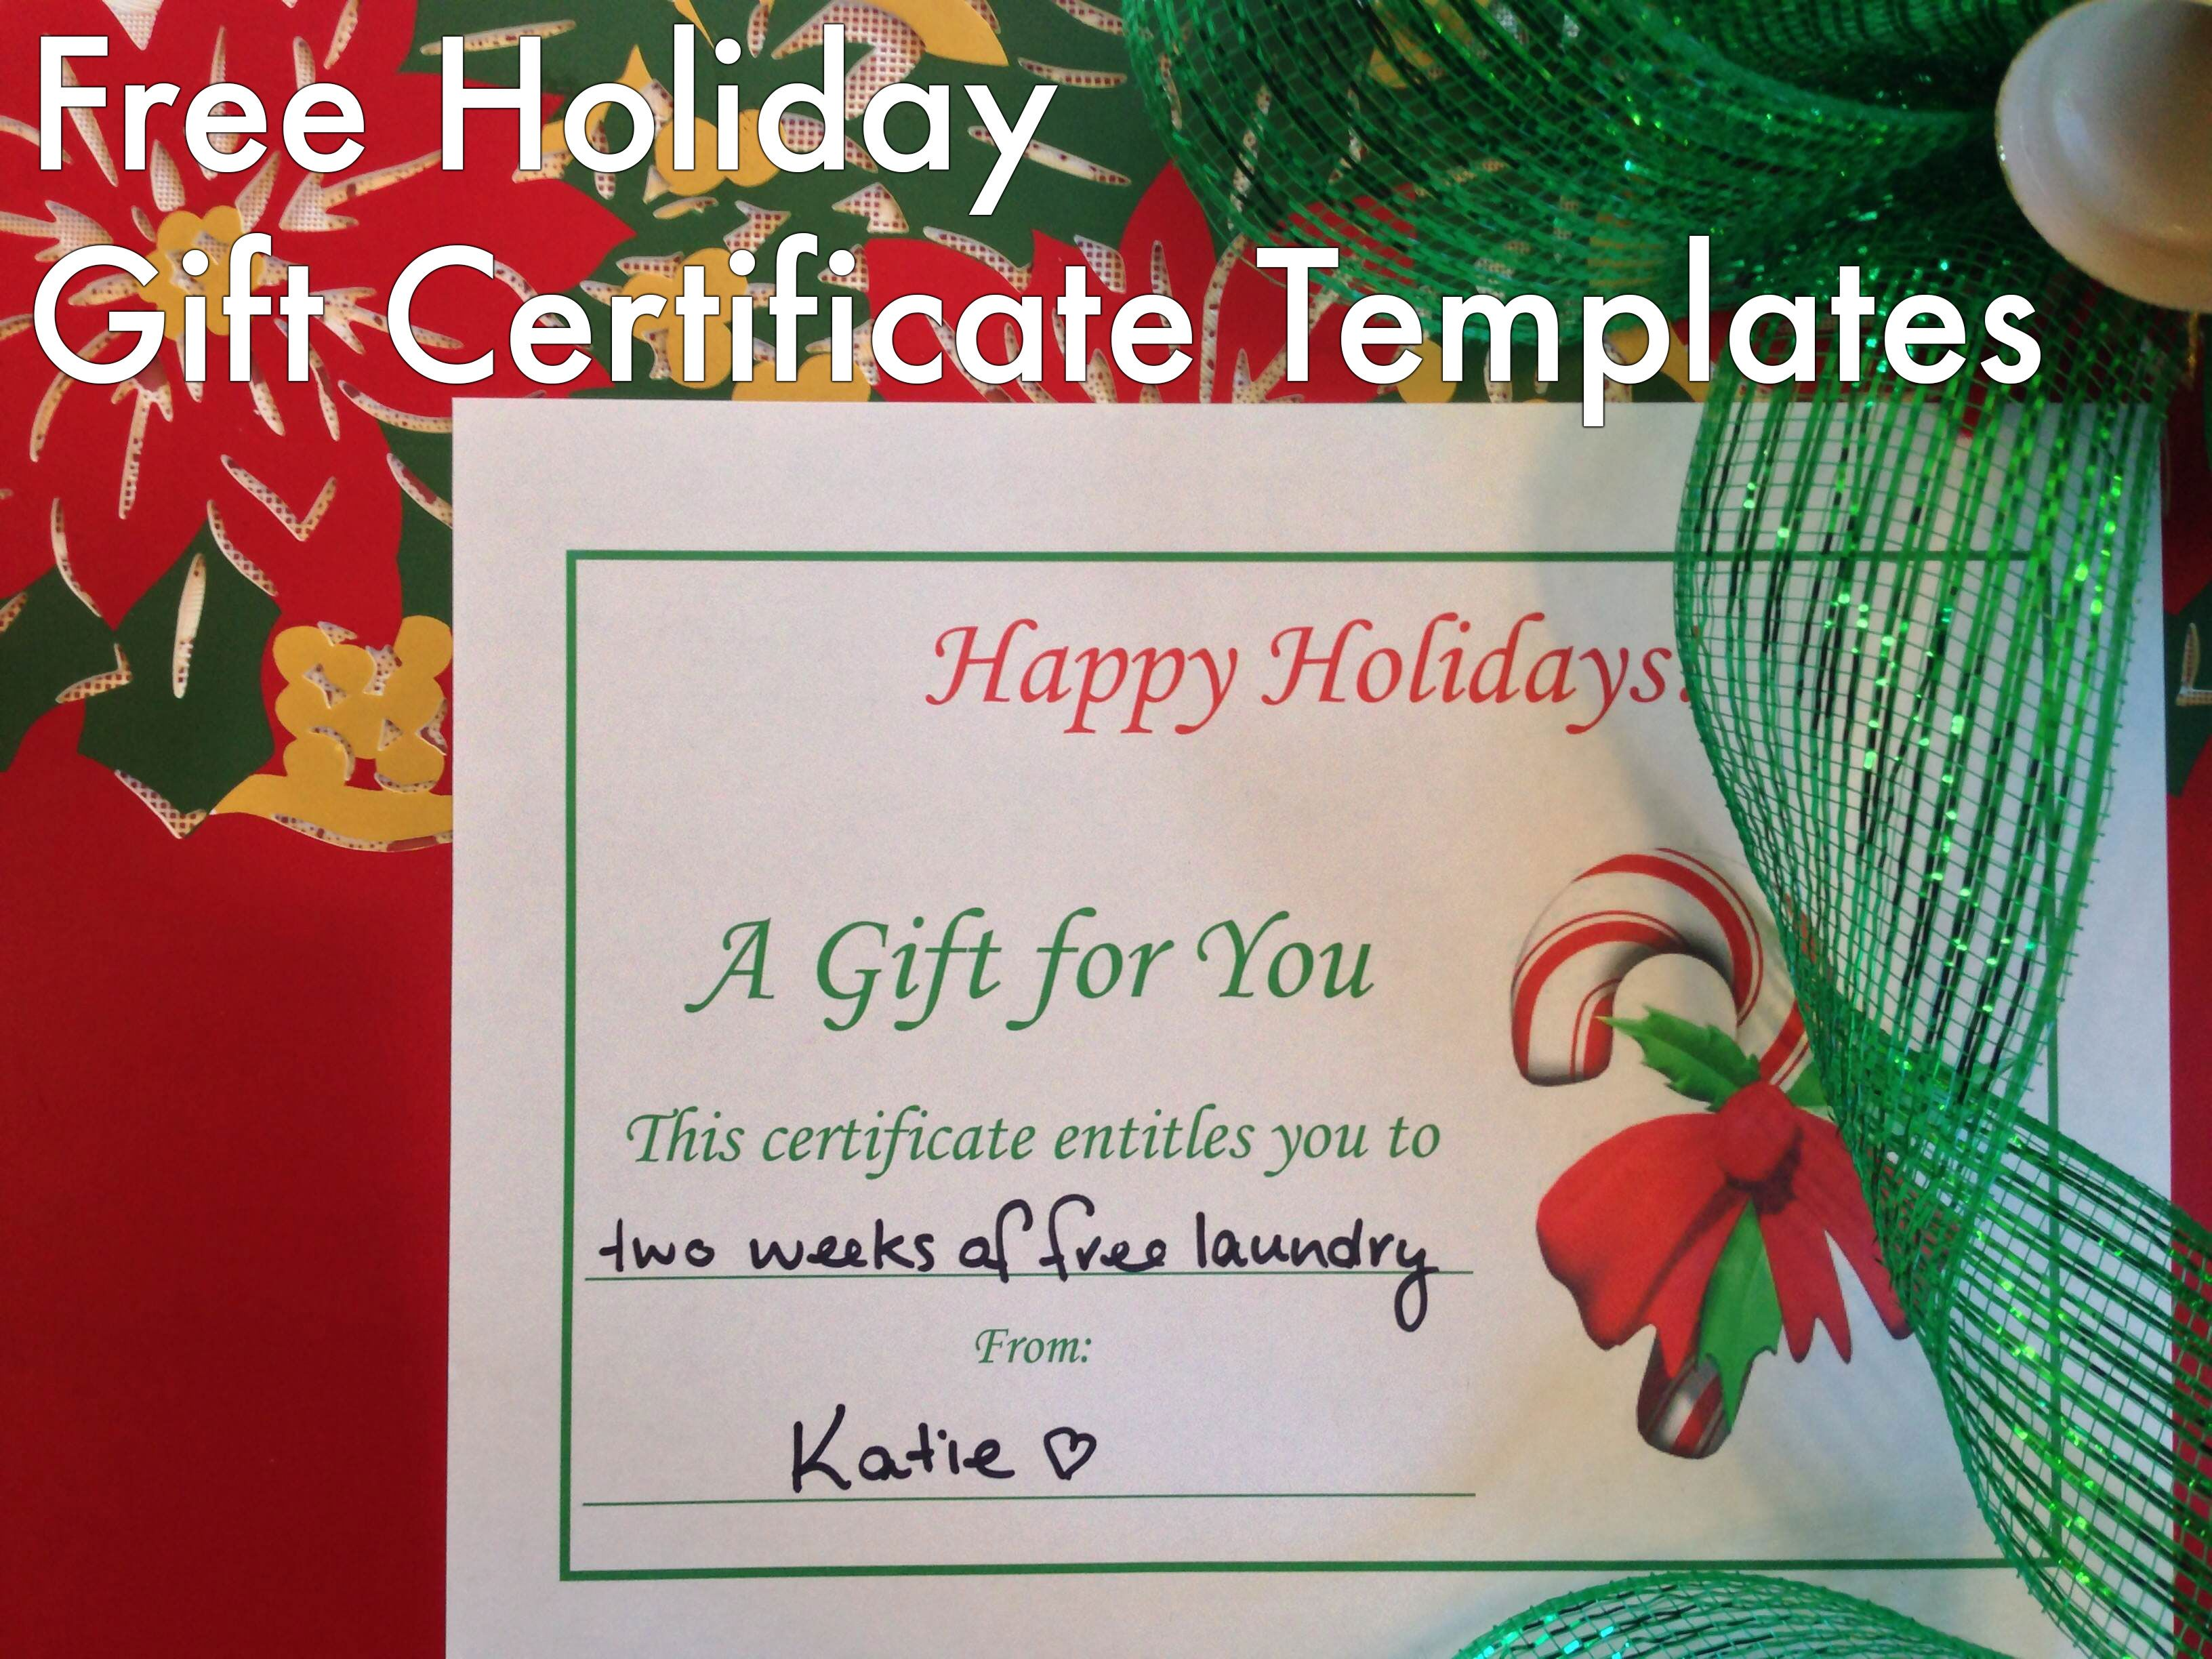 Free Holiday Gift Certificates Templates To Print Christmas Gift Certificate Template Holiday Gift Certificates Gift Certificate Template